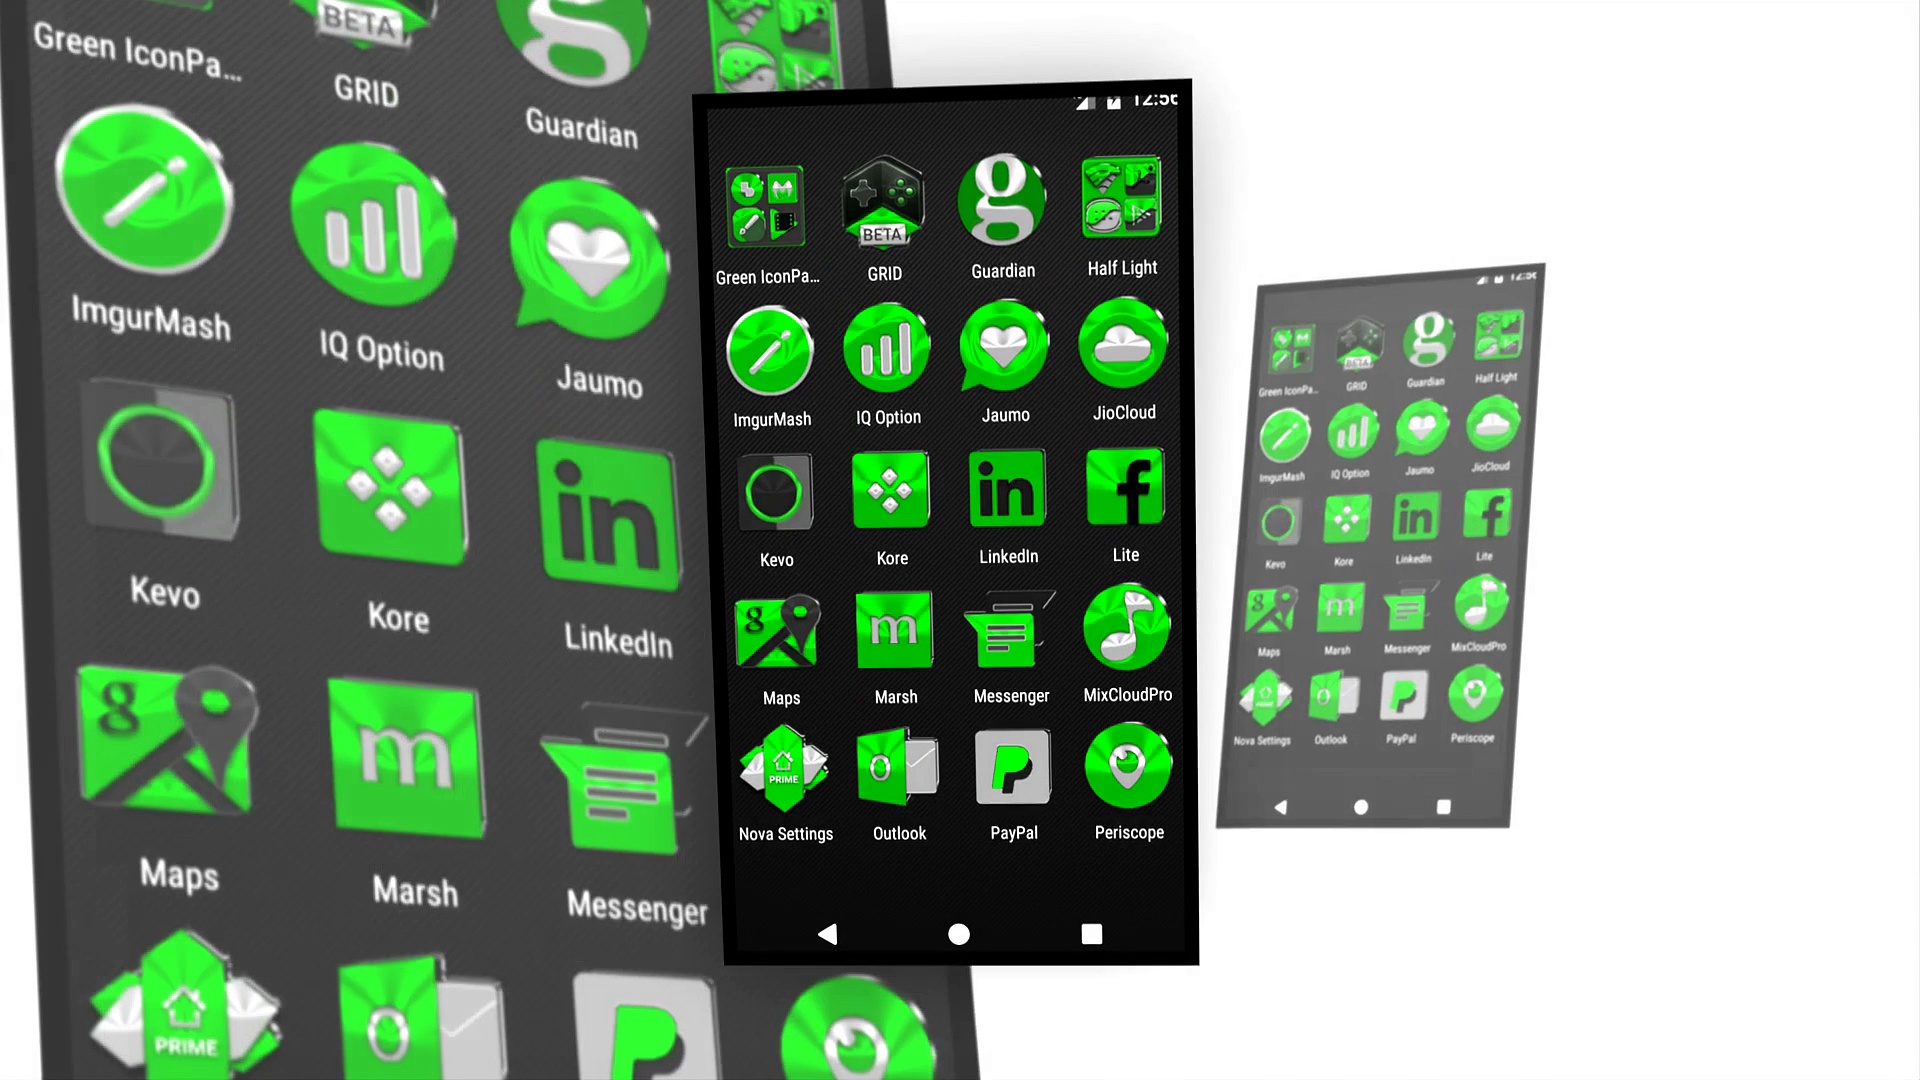 Green Icon Pack for Android Phones and Tablets FREE